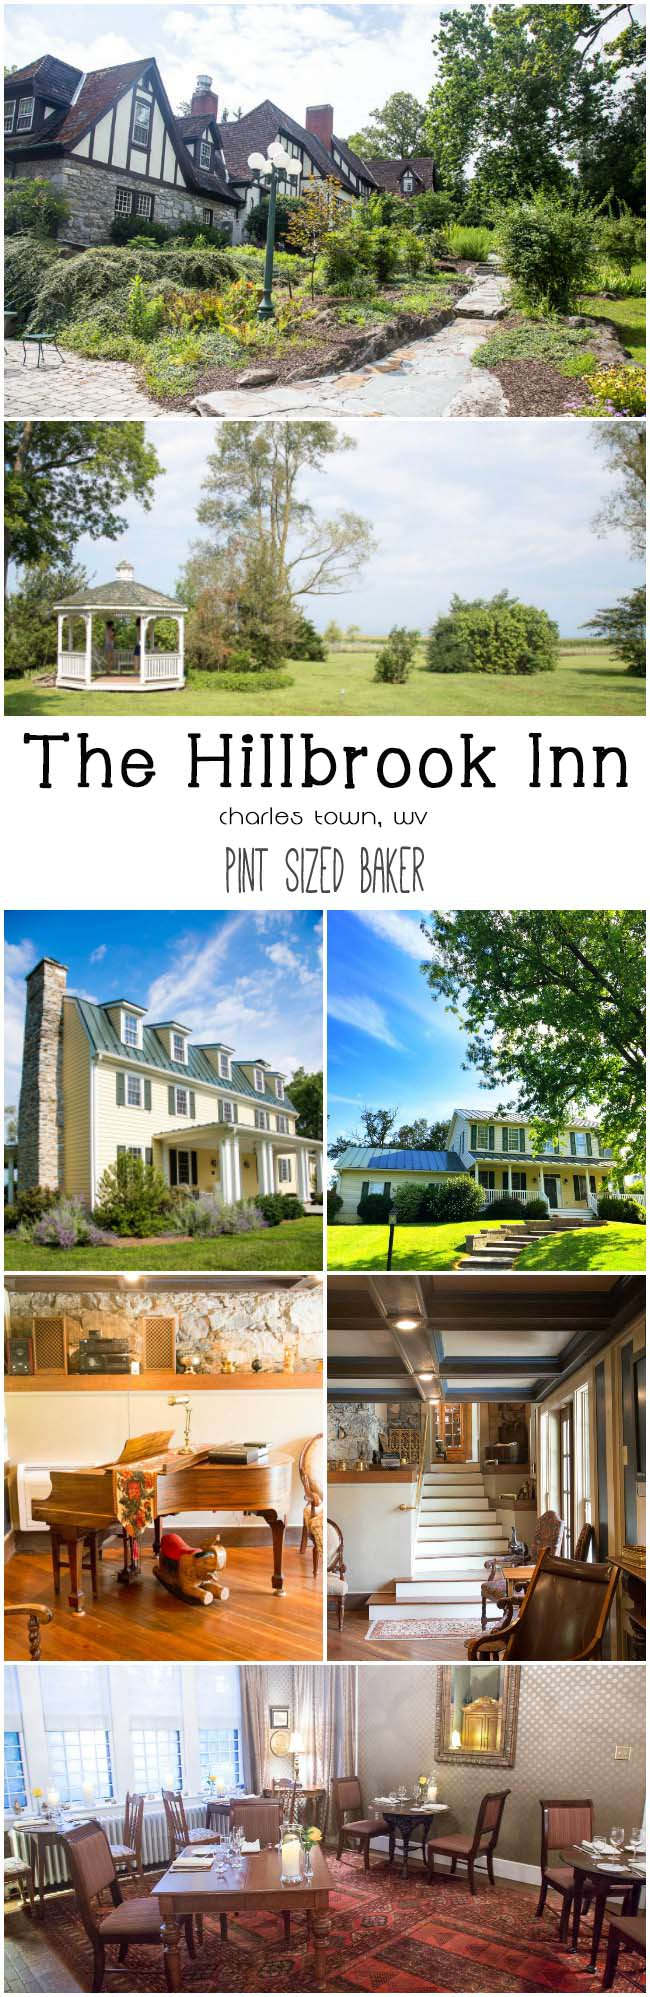 Spend the weekend in the West Virginia panhandle at one of the thee properties at the Hillbrook Inn. It's a sweet destination!